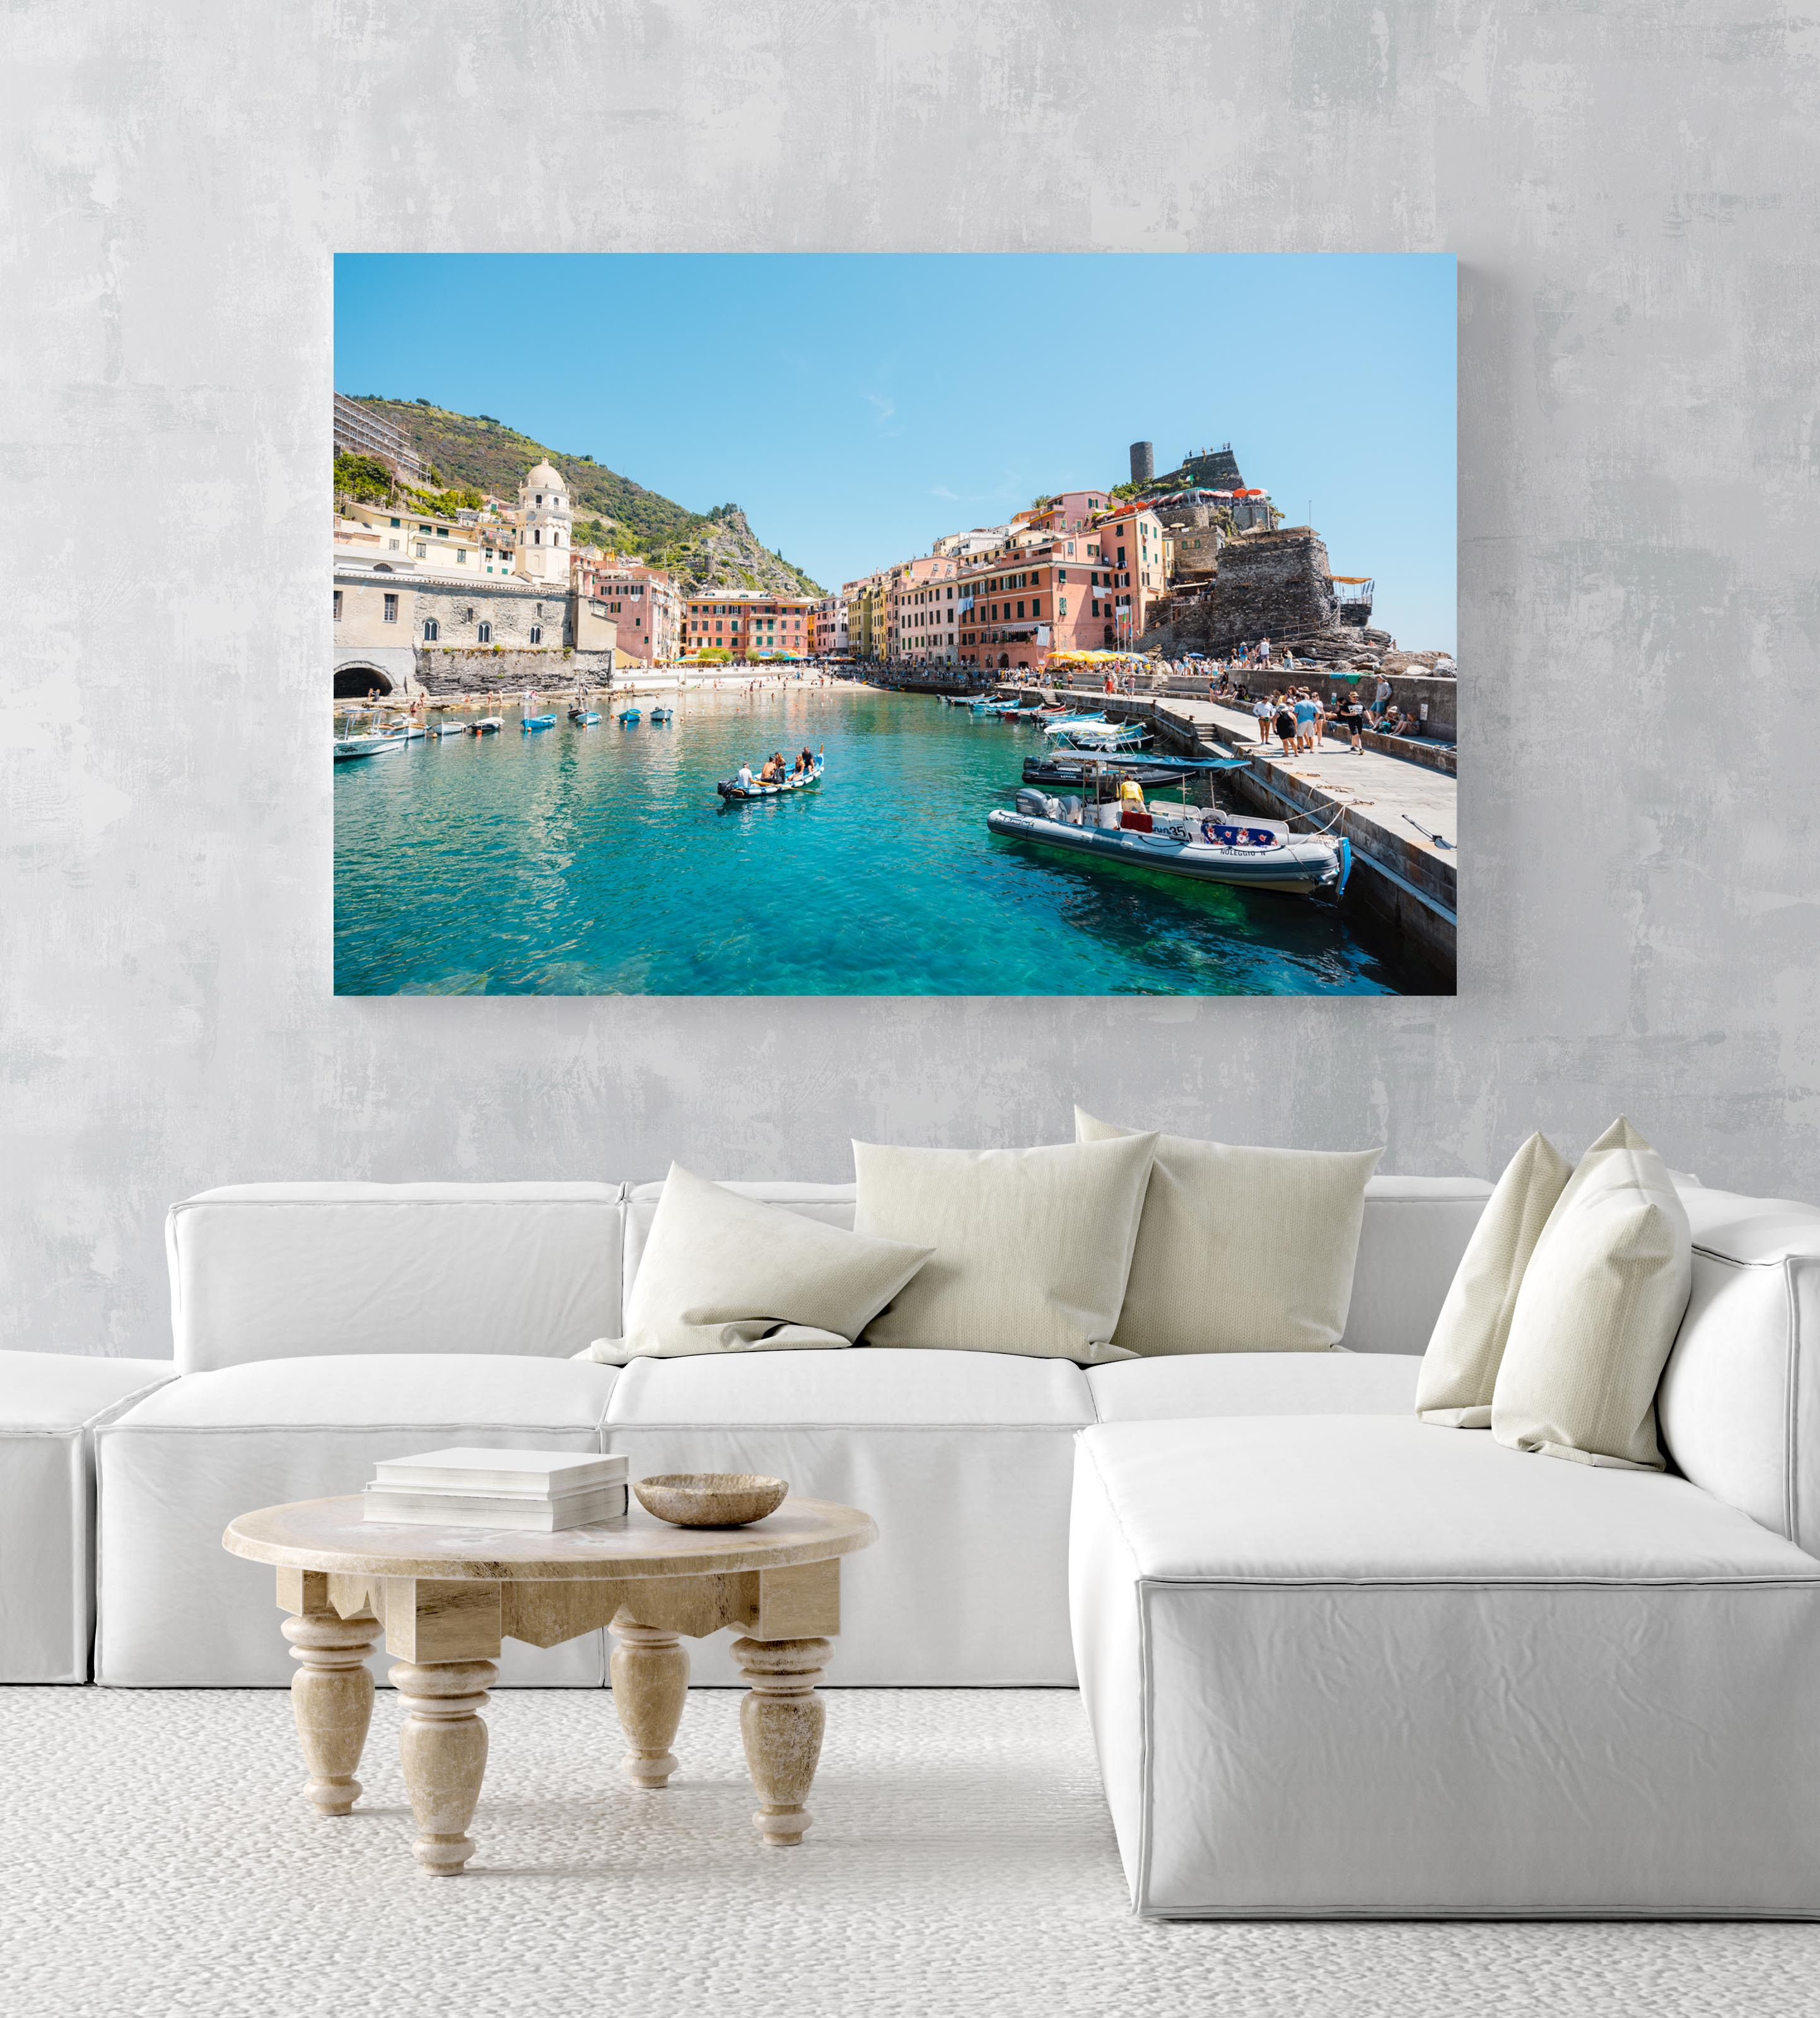 People on boat in blue water in colorful Vernazza of Cinque Terre in an acrylic/perspex frame